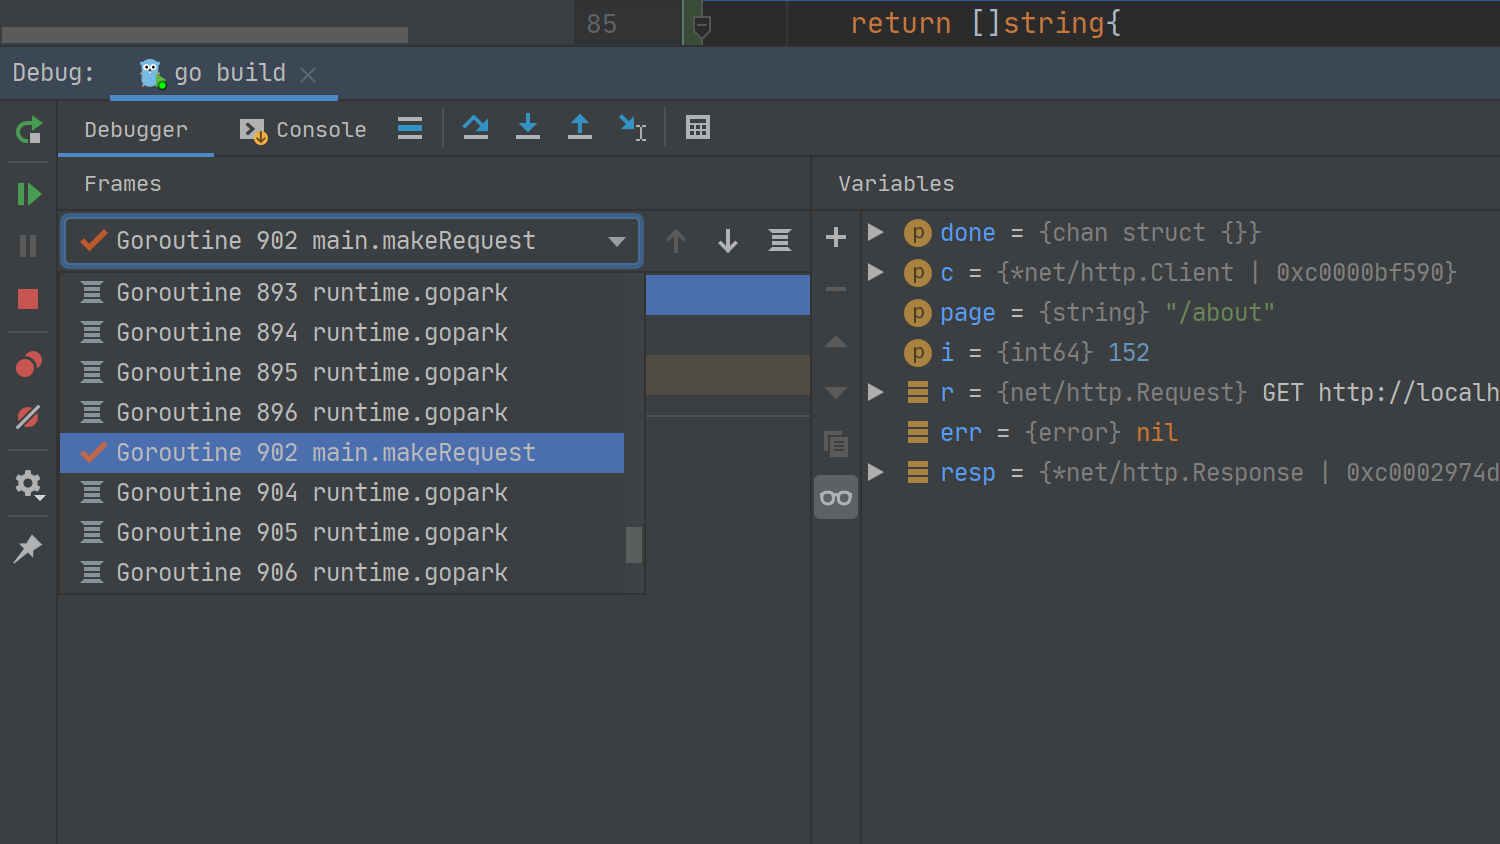 debugger without labels